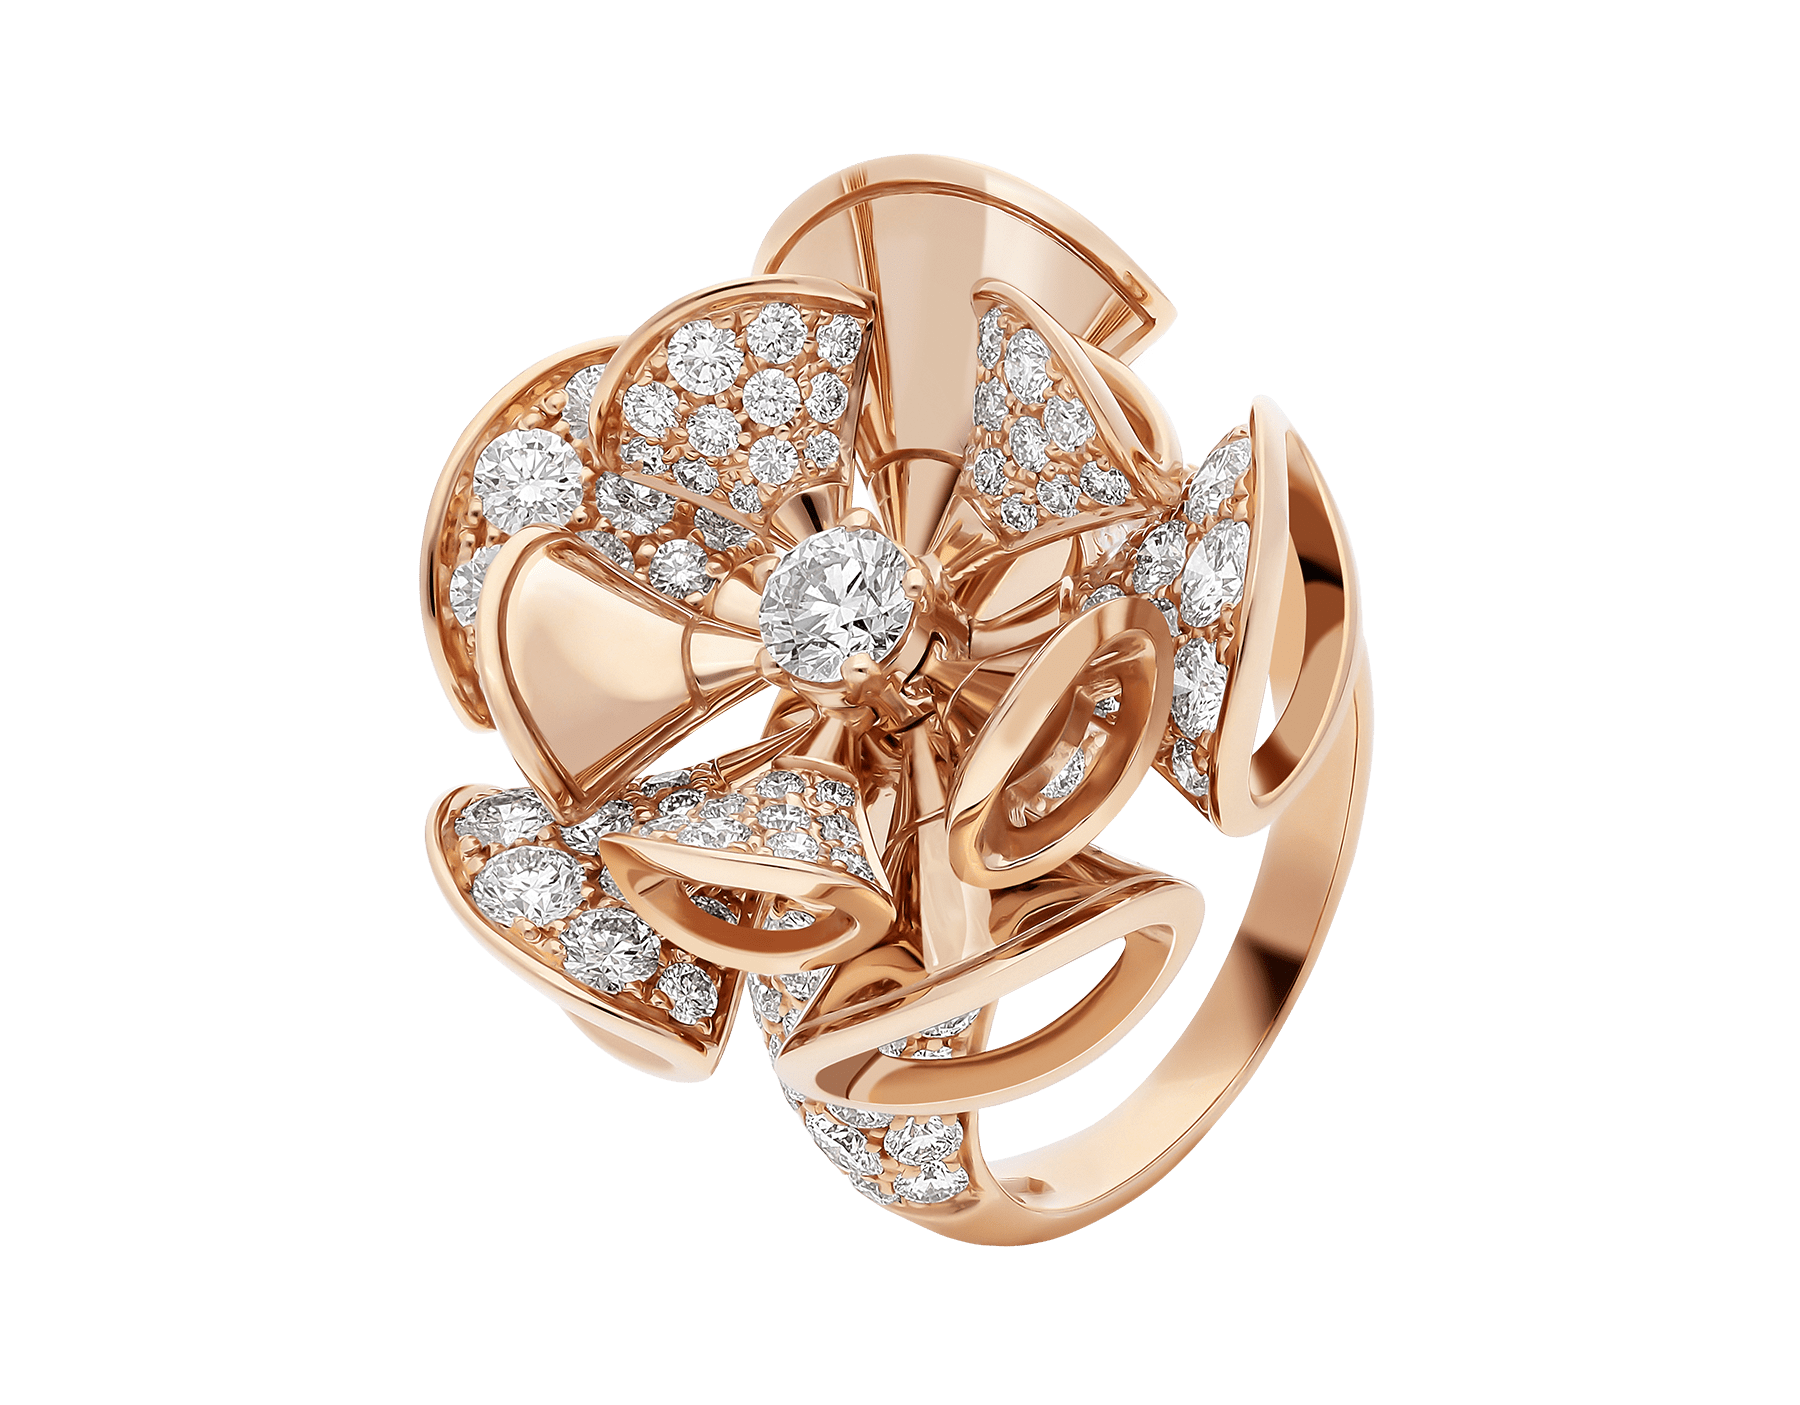 DIVAS' DREAM ring in 18 kt rose gold, set with central diamond and pavé diamonds. AN856354 image 1